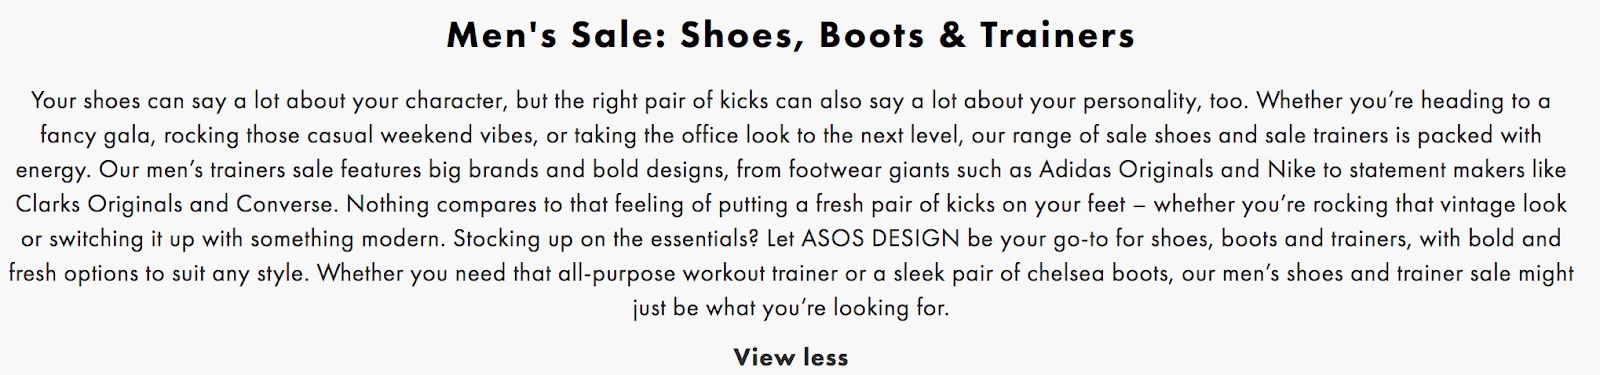 asos category description 1